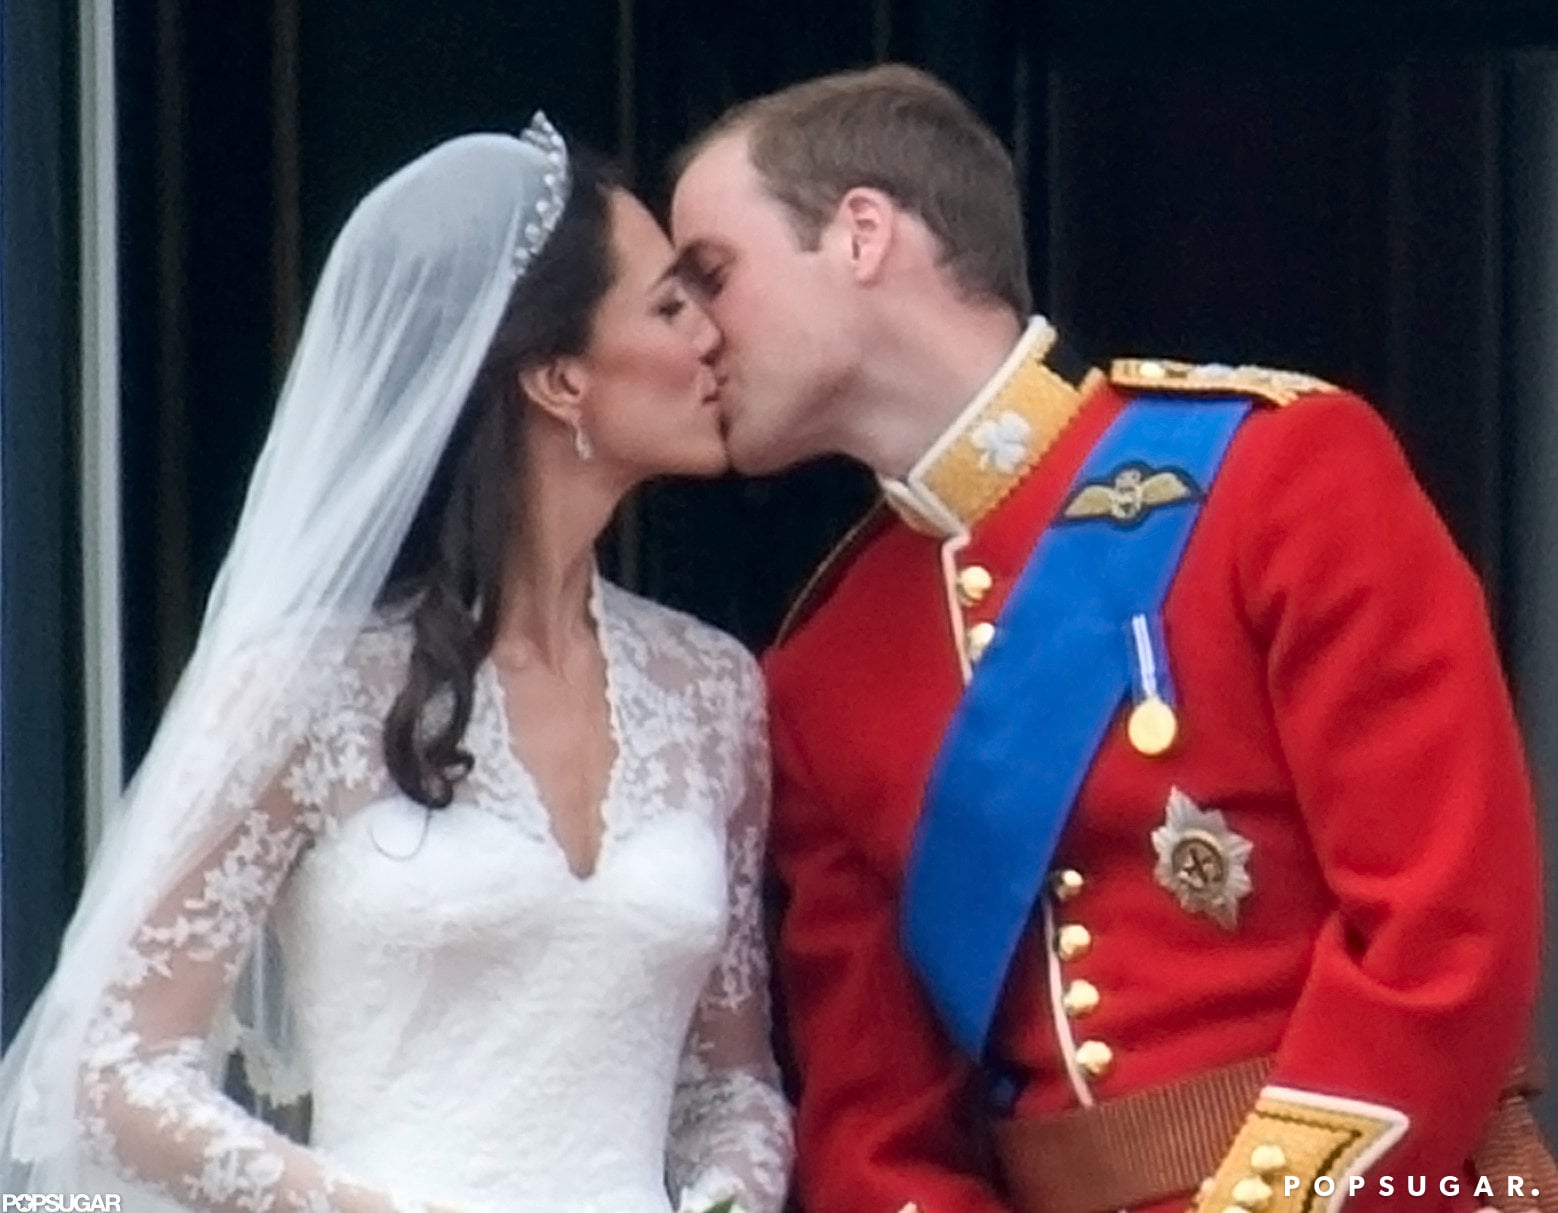 The most famous kiss goes to Kate Middleton and Prince William after their wedding on the balcony of Buckingham Palace in April 2011.